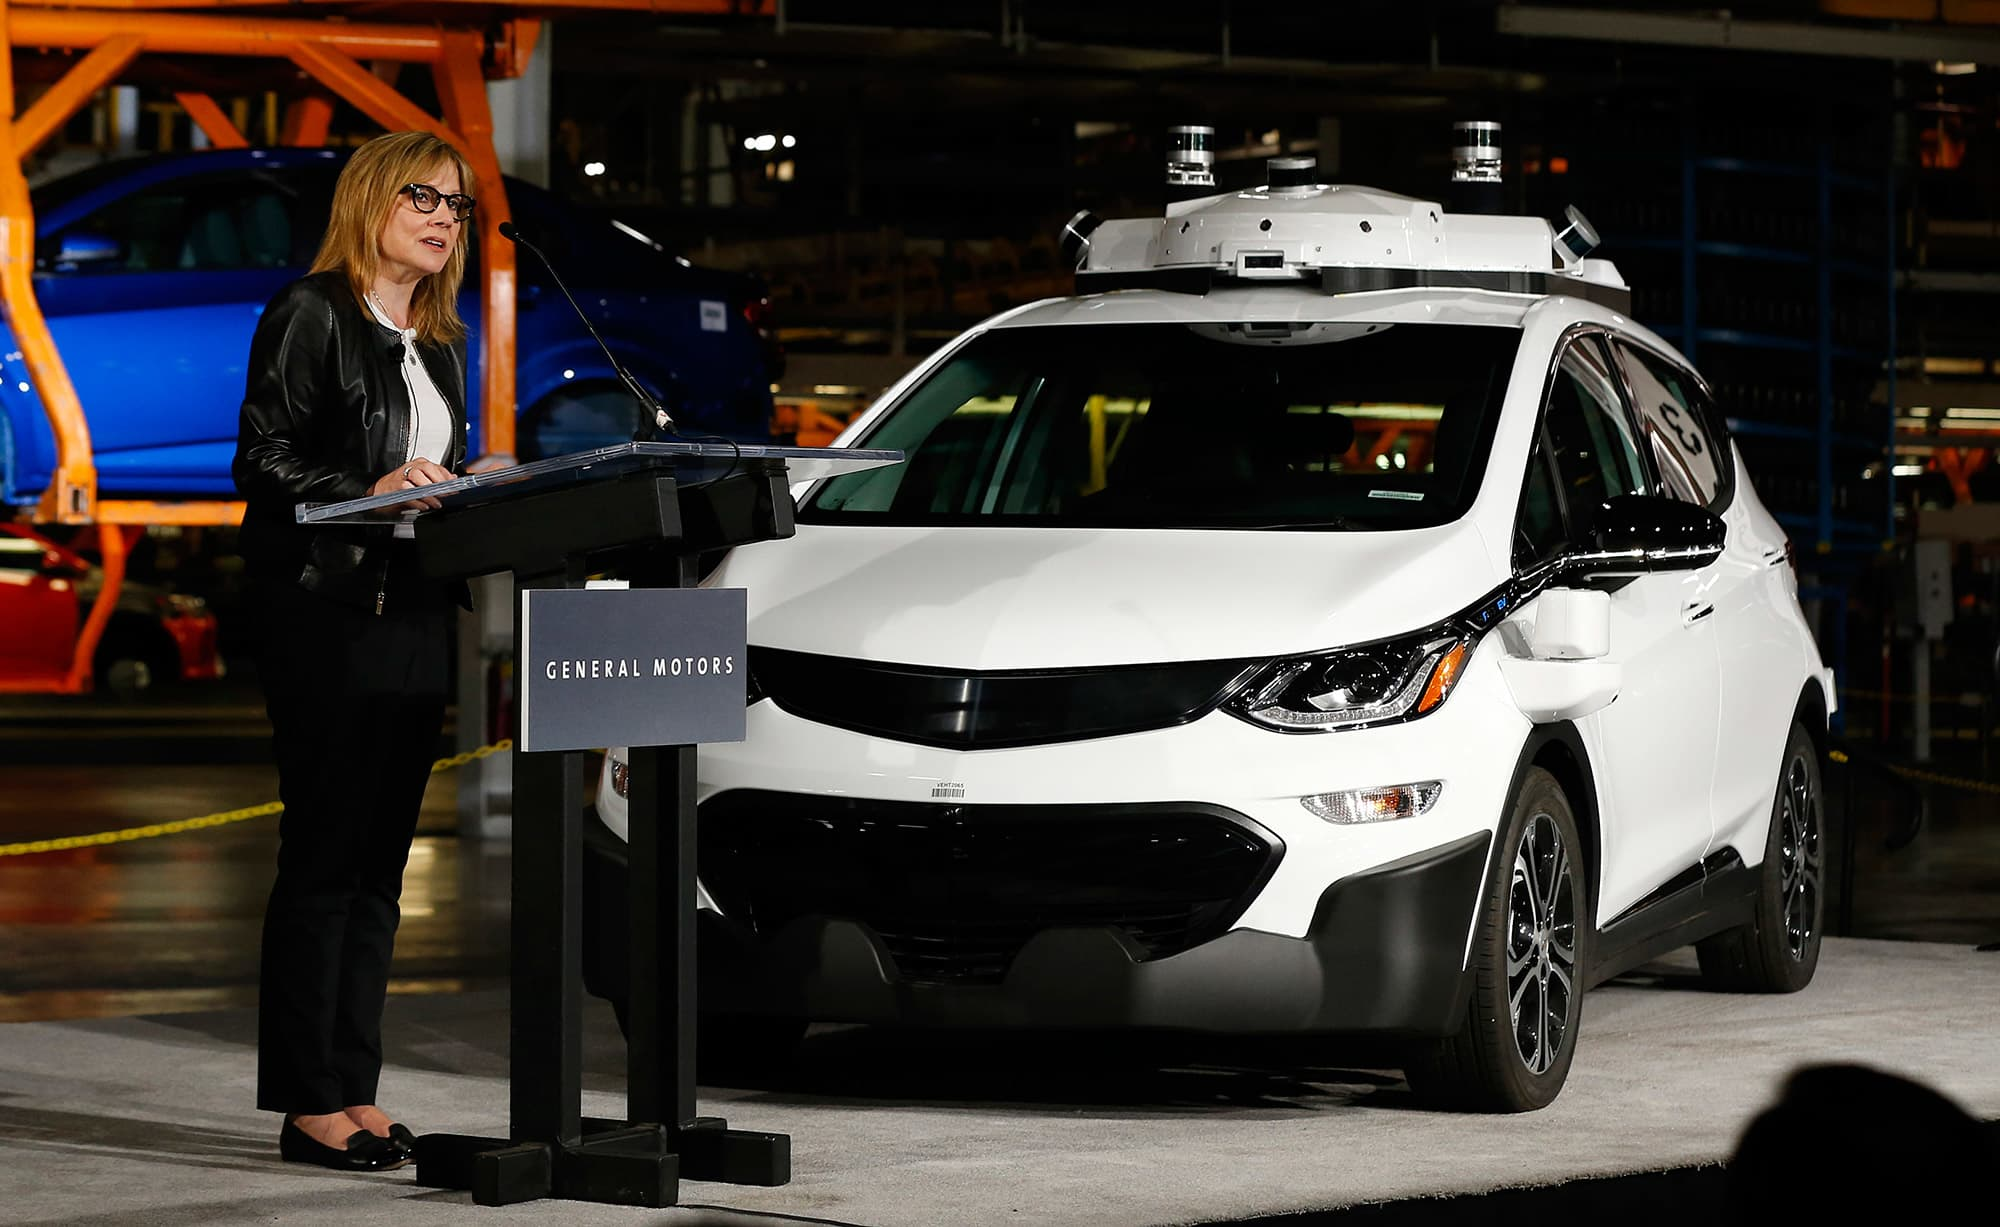 General Motors Cars >> Gm Will Test Fully Autonomous Cars In Quarters Not Years Ceo Barra